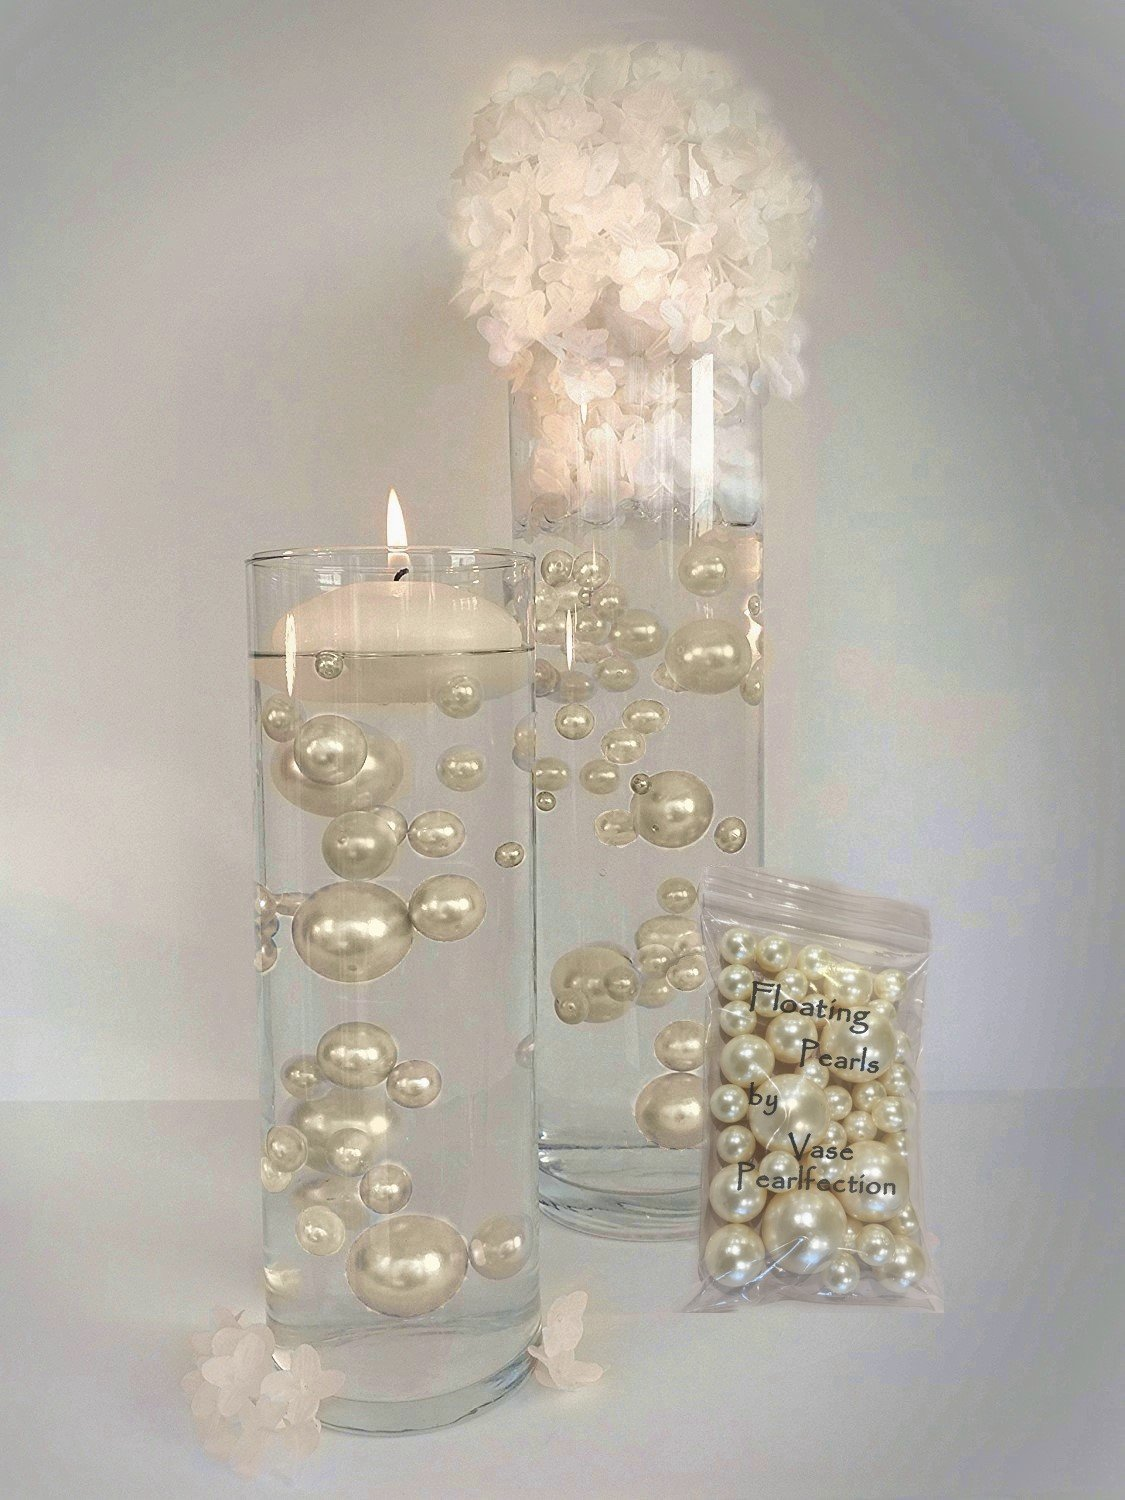 All Ivory Pearls - Jumbo and Assorted Sizes Vase Fillers for Centerpieces Decorations - To Float the Pearls- Order the Transparent Water Gels by Vase Pearlfection